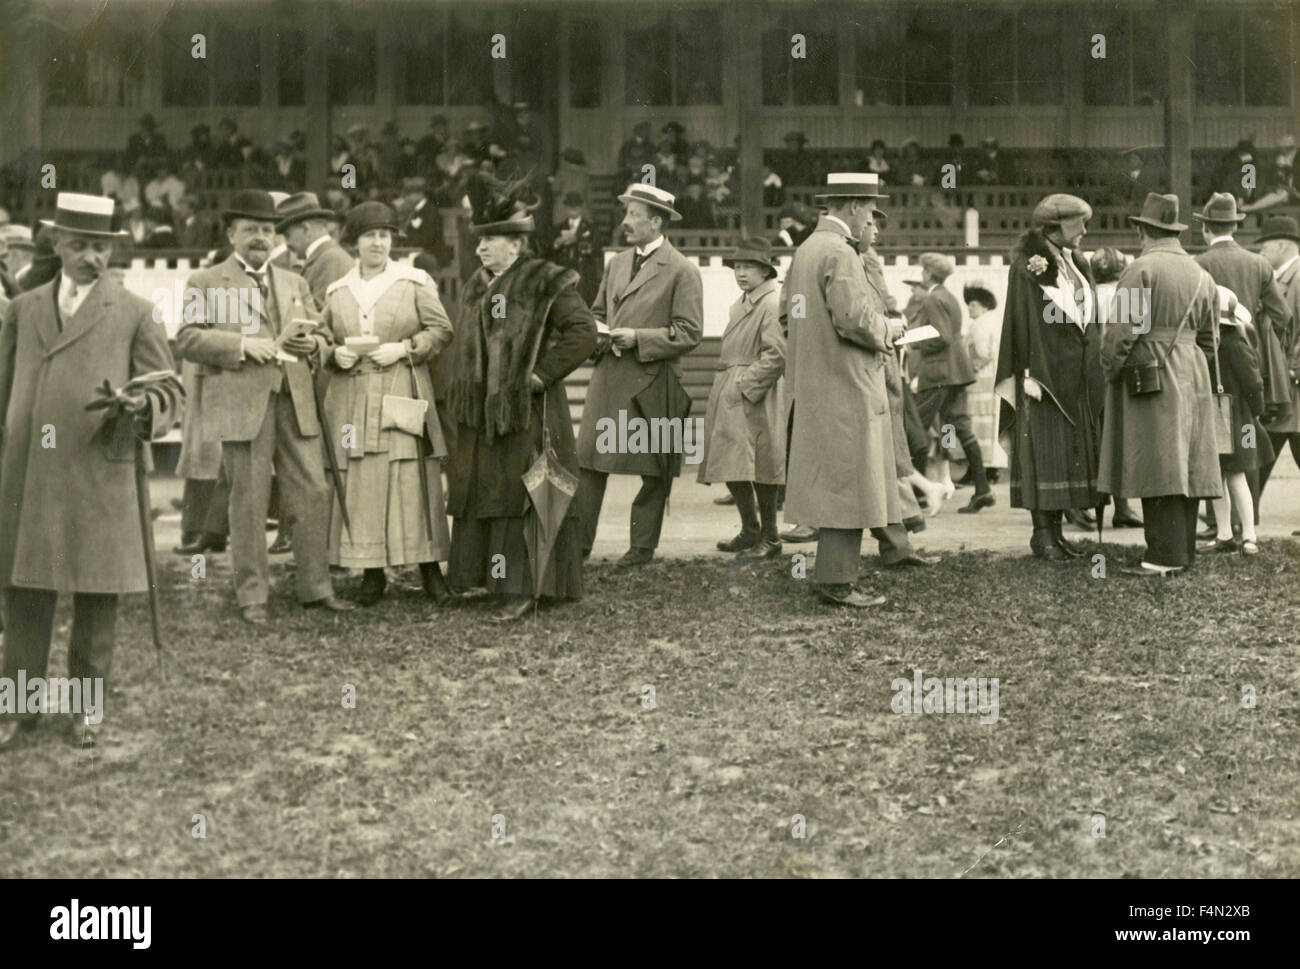 Spectators at the racecourse - Stock Image